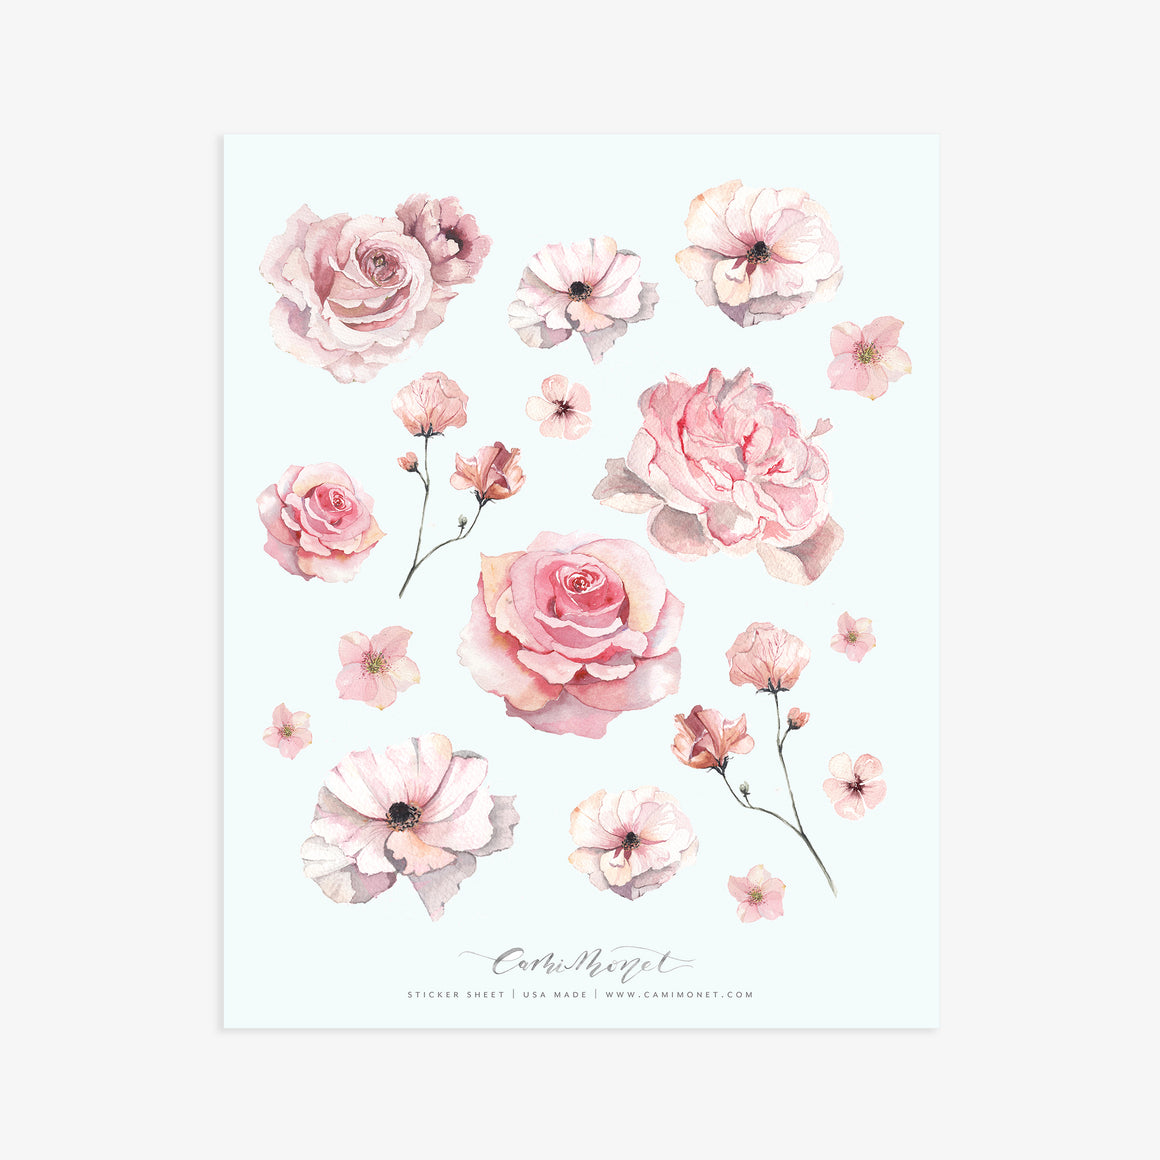 Blush Bits and Blooms Sticker Sheet